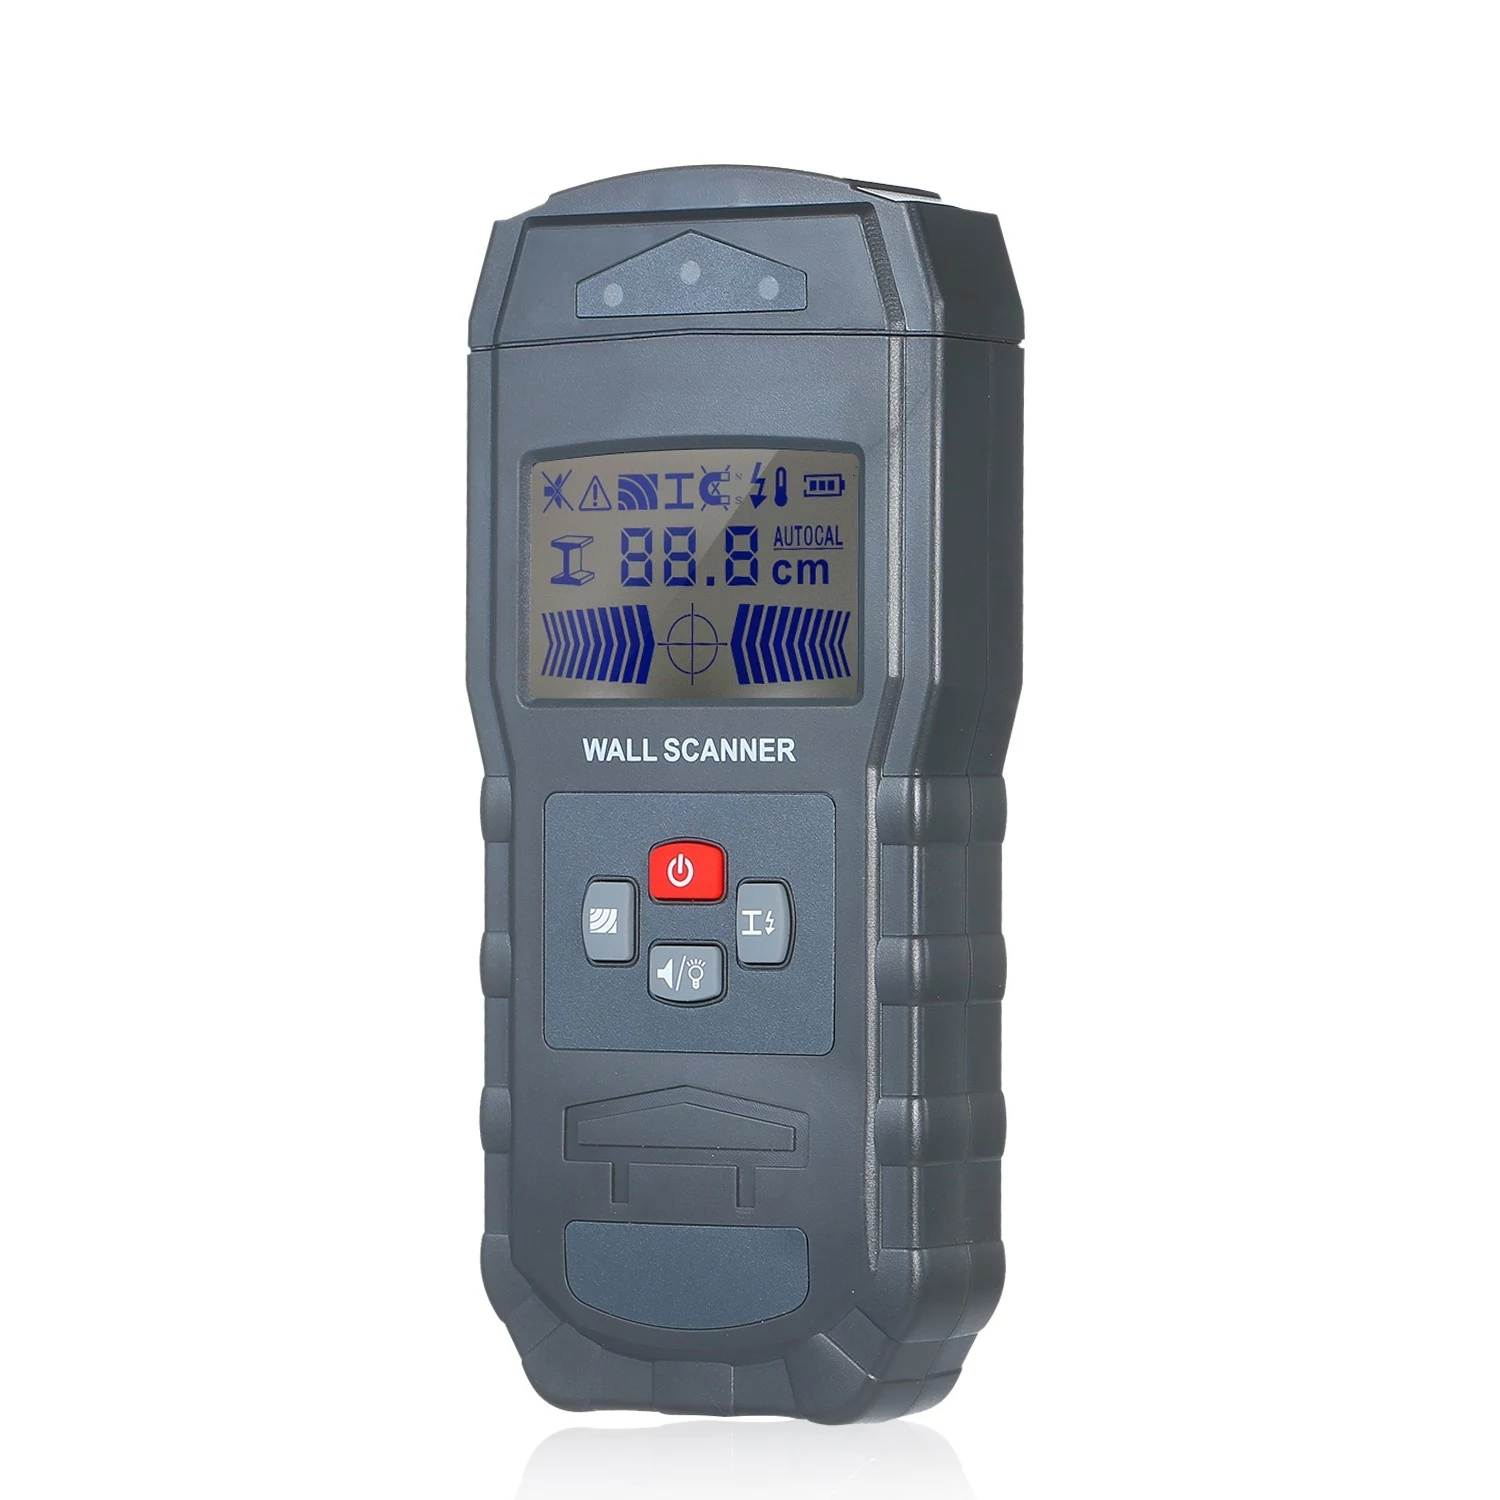 WT55 Metal Digital Wall Scanner Detector Detecting Wire Live Cable Water Pipes Metal Materials Electronic Measuring Instruments